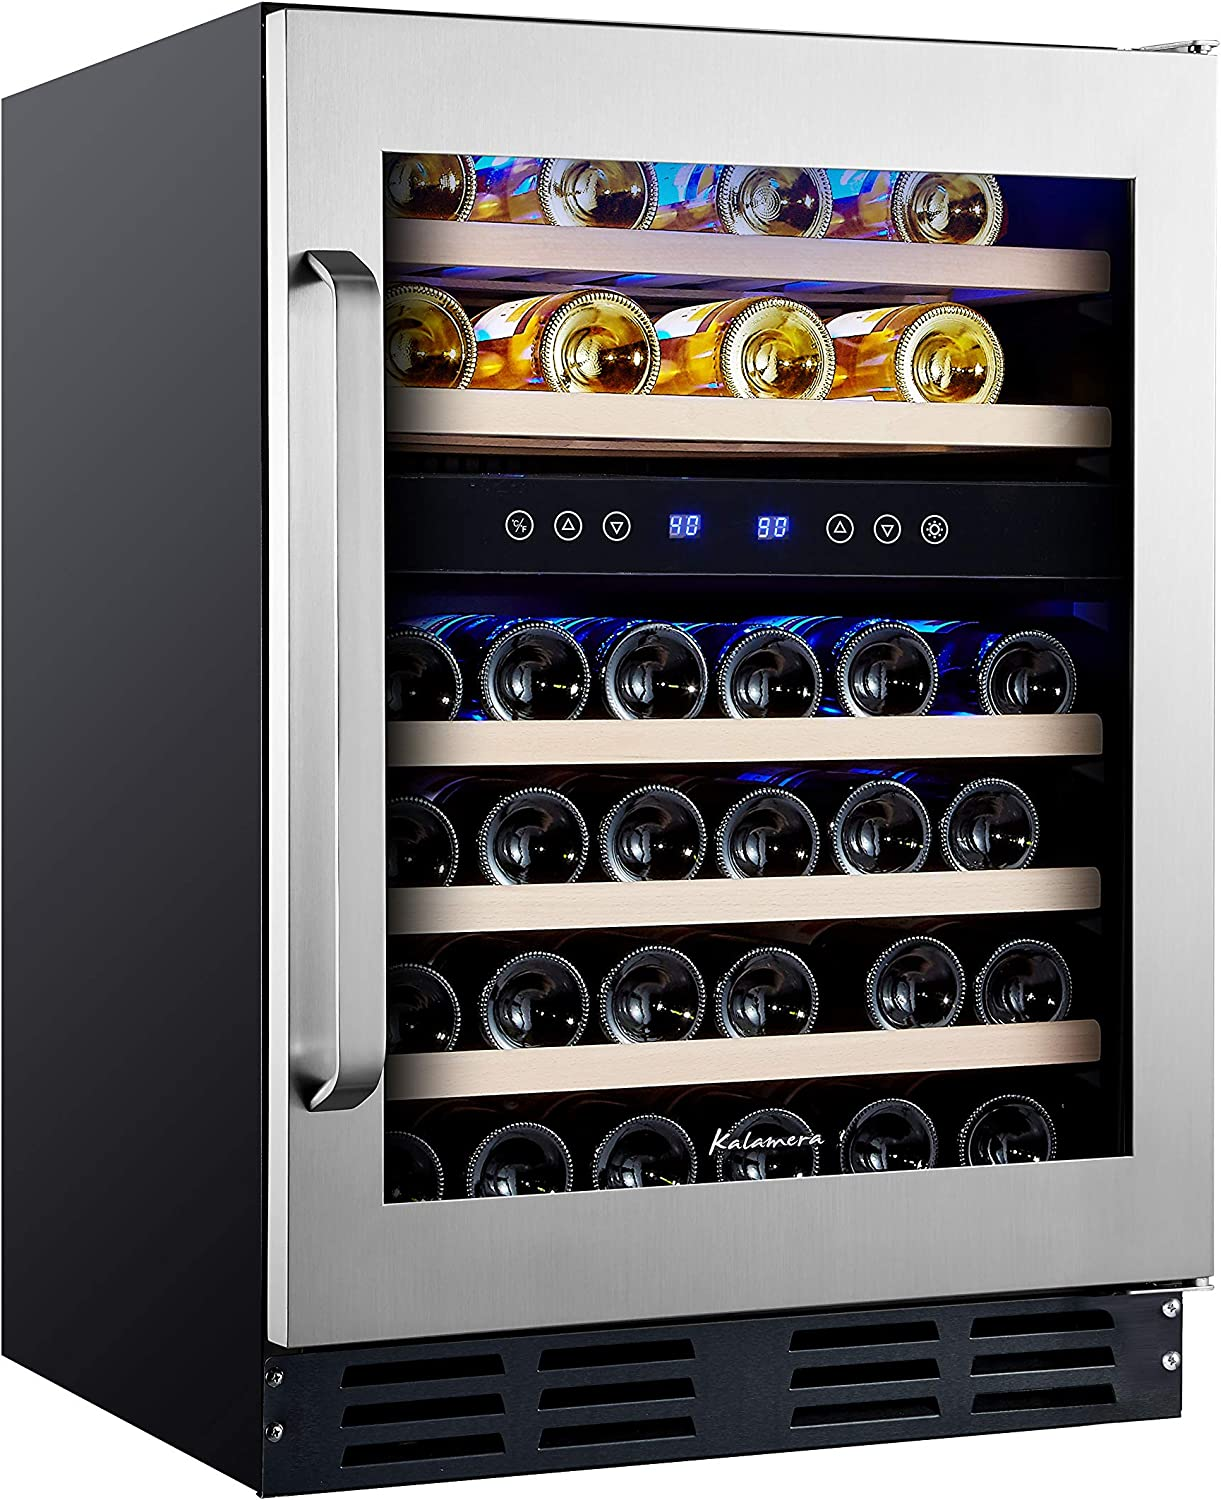 81D5OphyKsL. AC SL1500 The Best Value Beverage Coolers for Money 2021 (Review)